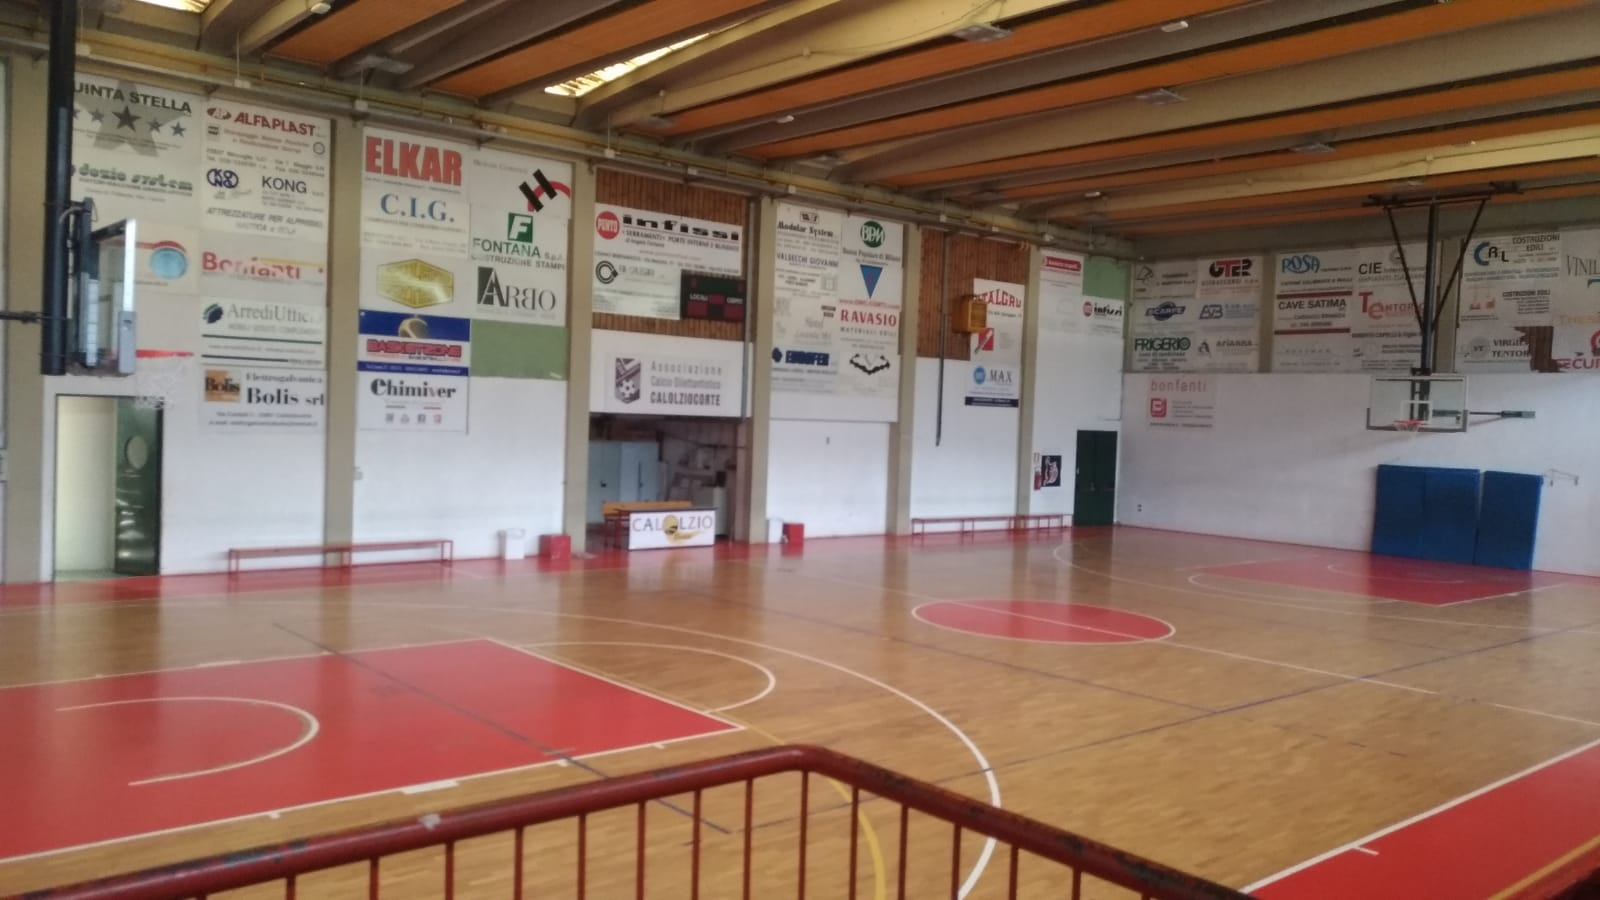 The work done at Calolziocorte's gym